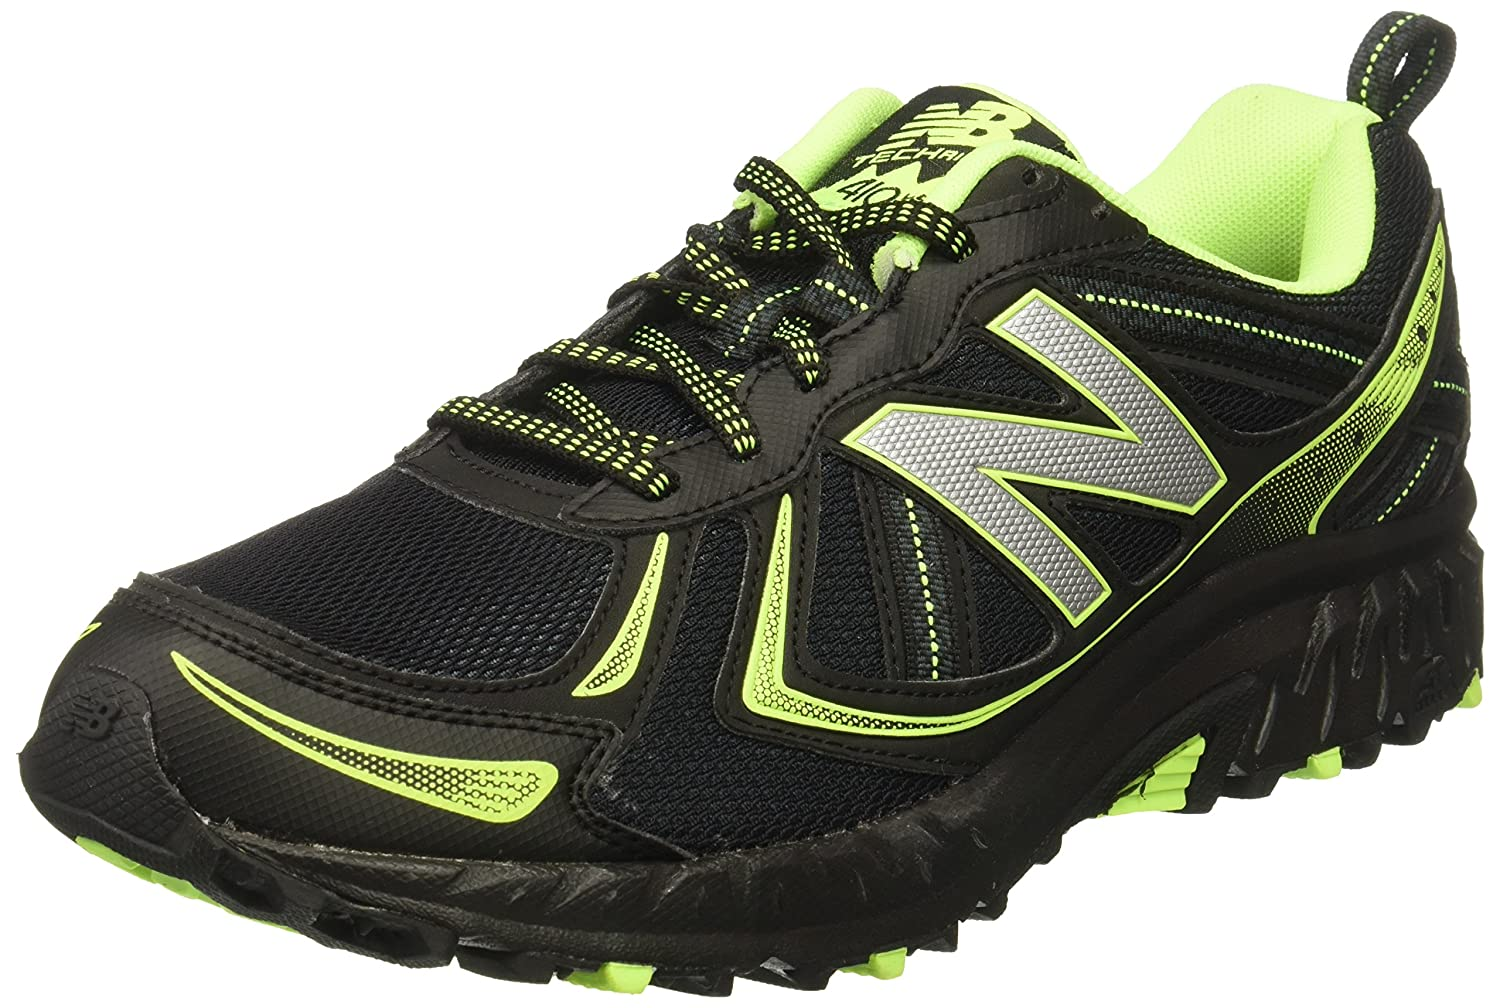 New Balance Men's Mt410v5 Cushioning Trail Runner B01LX41MJ6 9.5 D(M) US|Black